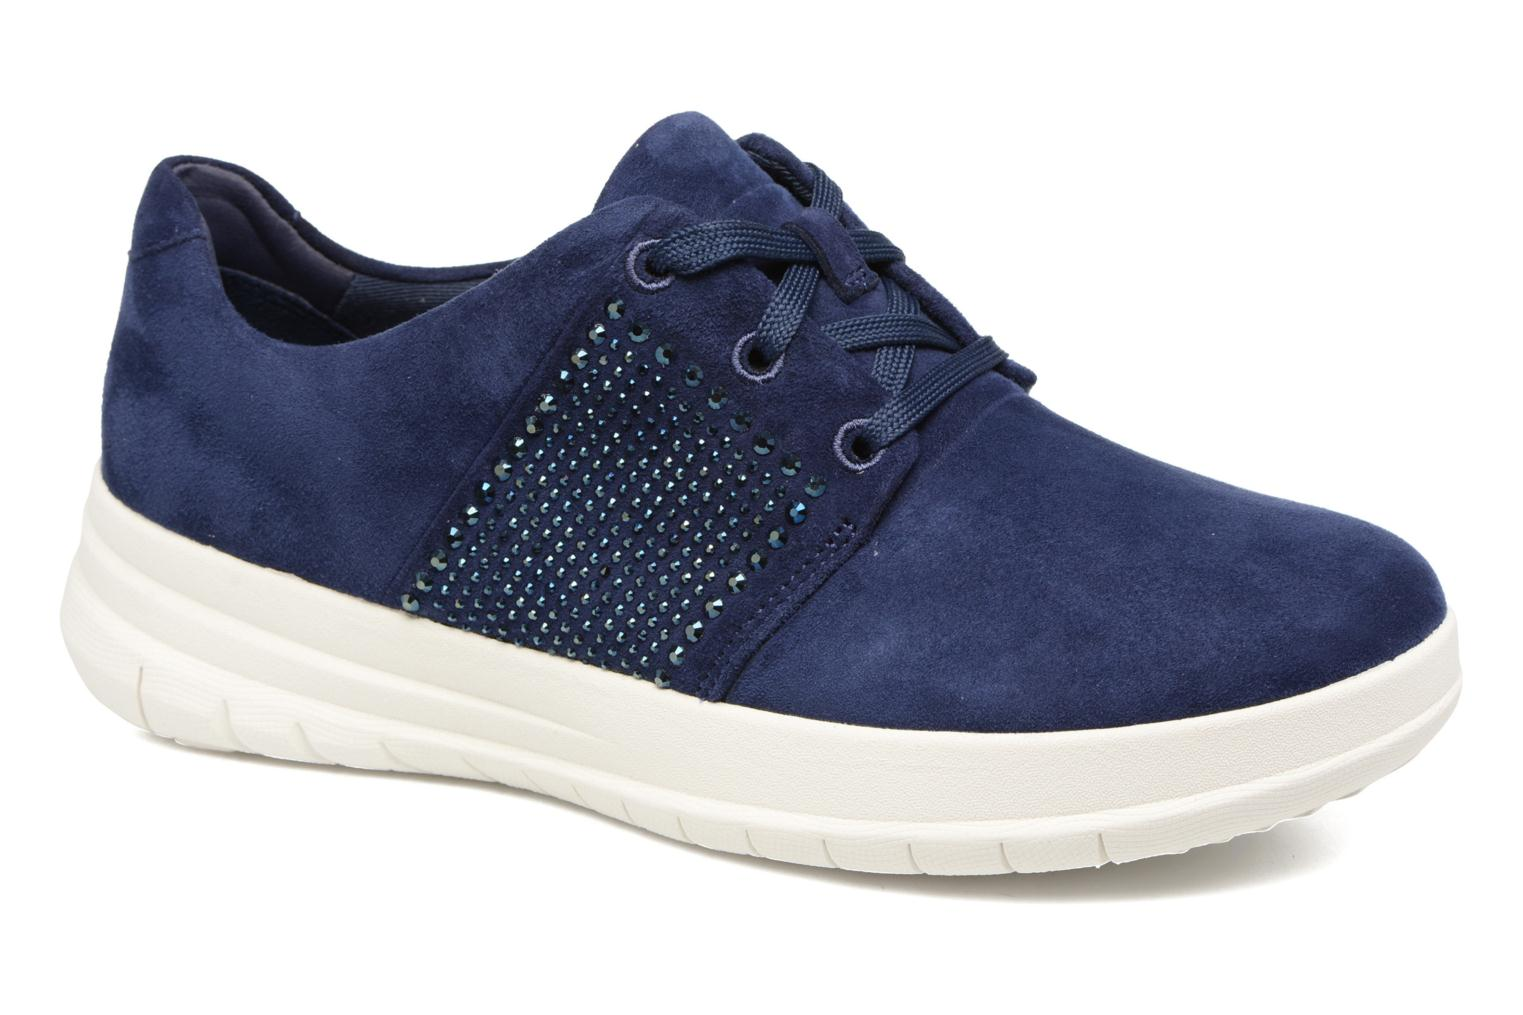 Marques Chaussure femme FitFlop femme Sporty-Pop X CRYSTAL Sneaker Midnight Navy